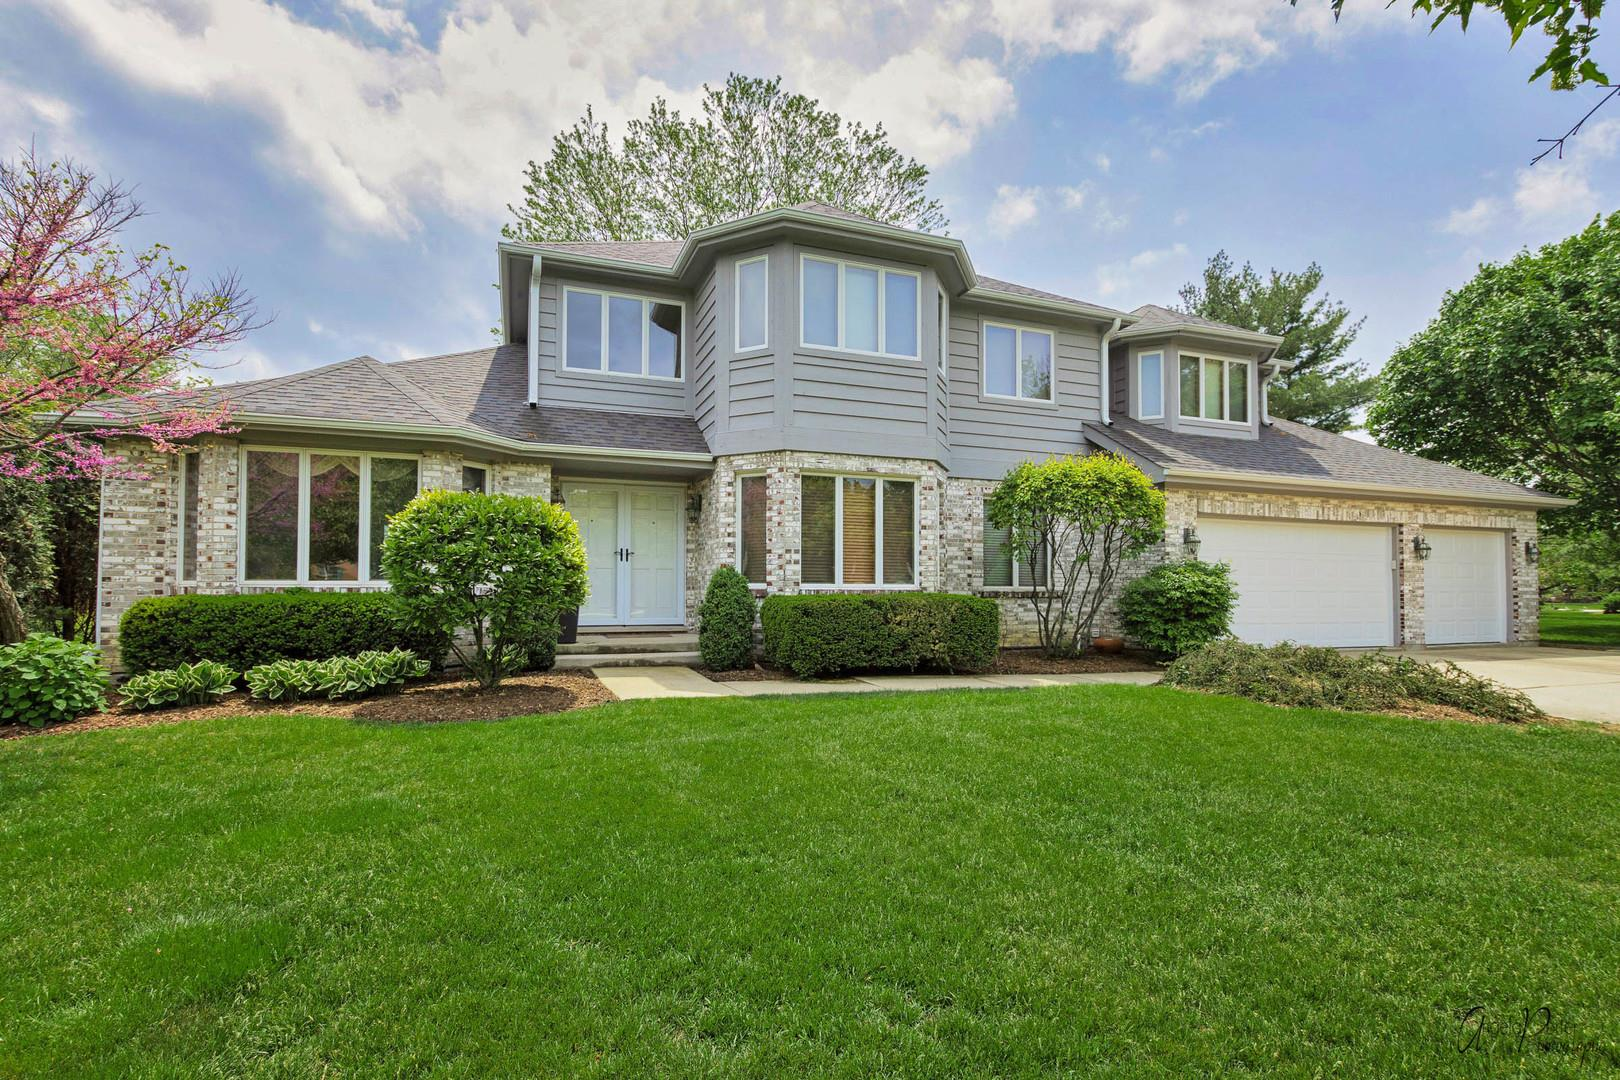 26 Copperfield Drive, Hawthorn Woods, IL 60047 - #: 11130357